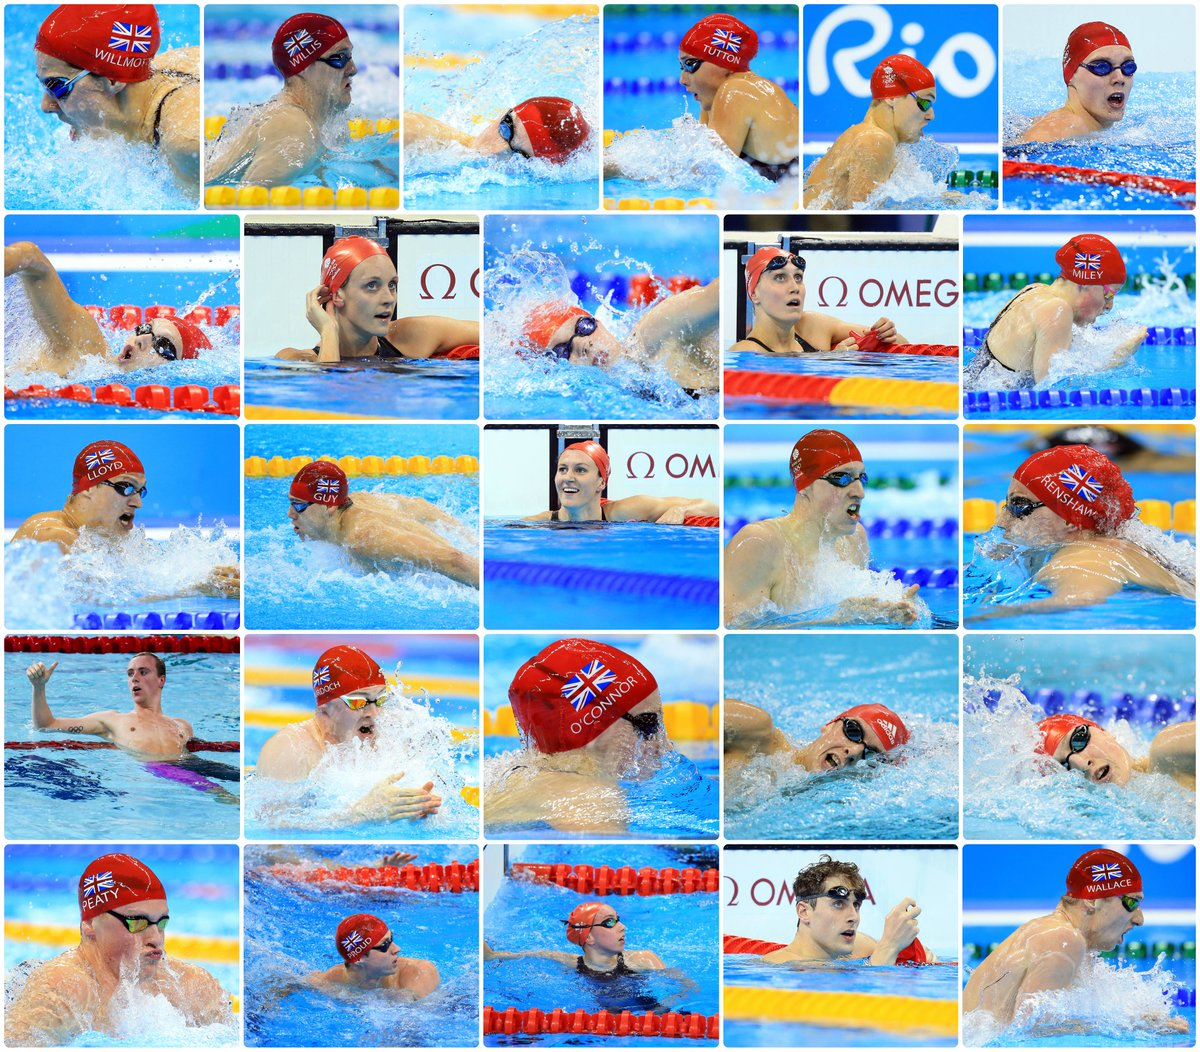 So that was @TeamGB Swimming's BEST EVER #OLYMPICS since 1908!! AWESOME week of action from our team of 26 in Rio! https://t.co/rsFPTe8w6Y